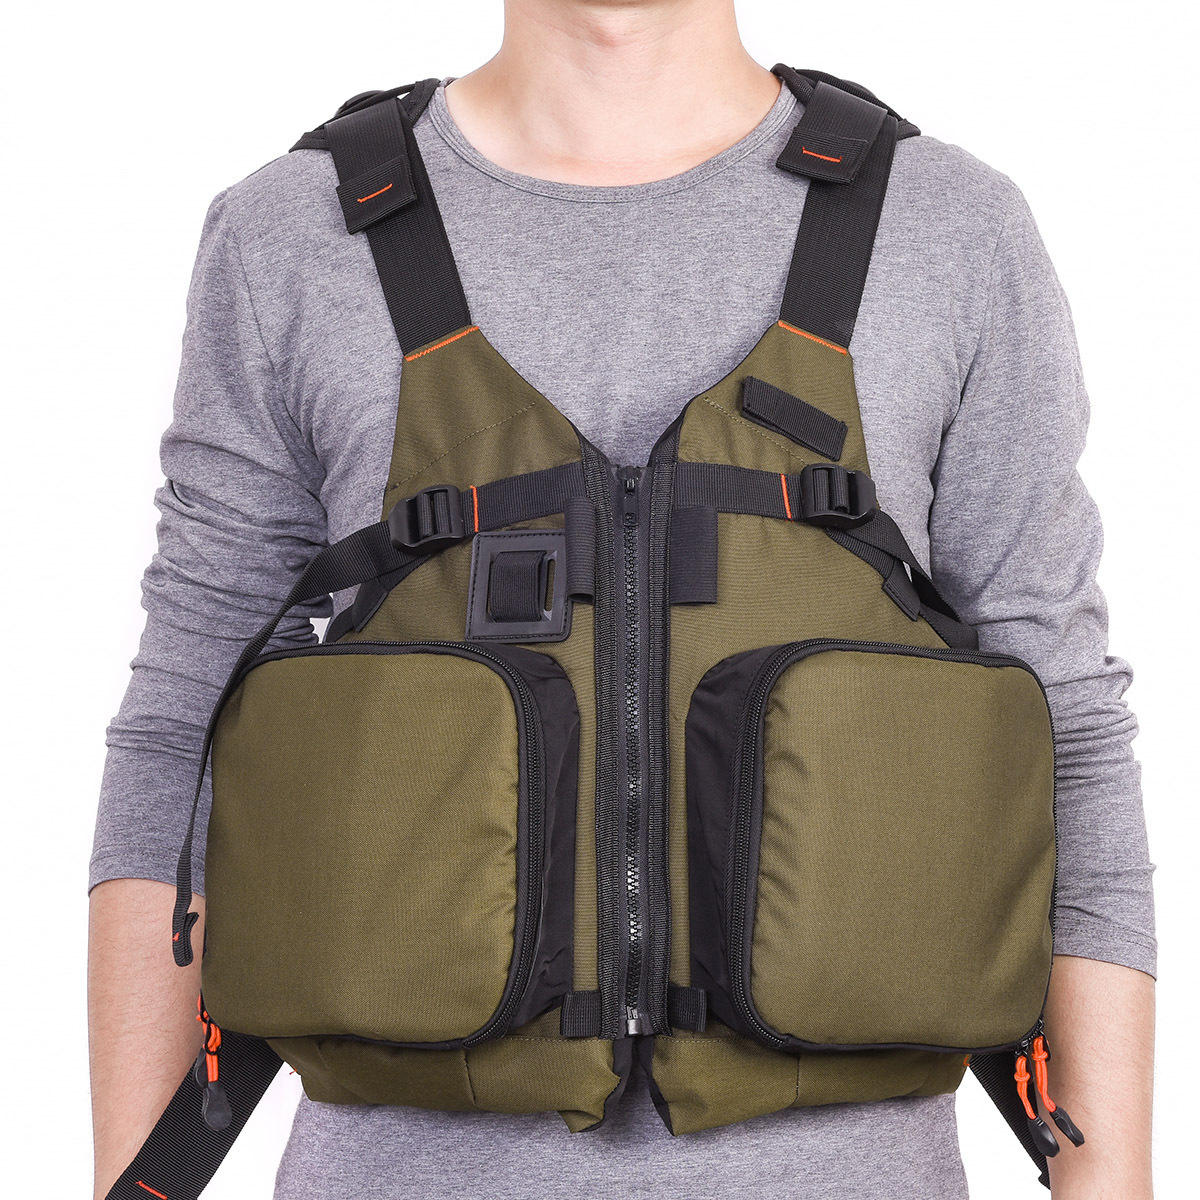 LEO 27988 D86 Olive Green Boat Floating Fishing Jacket Life Jacket Life Vest фото